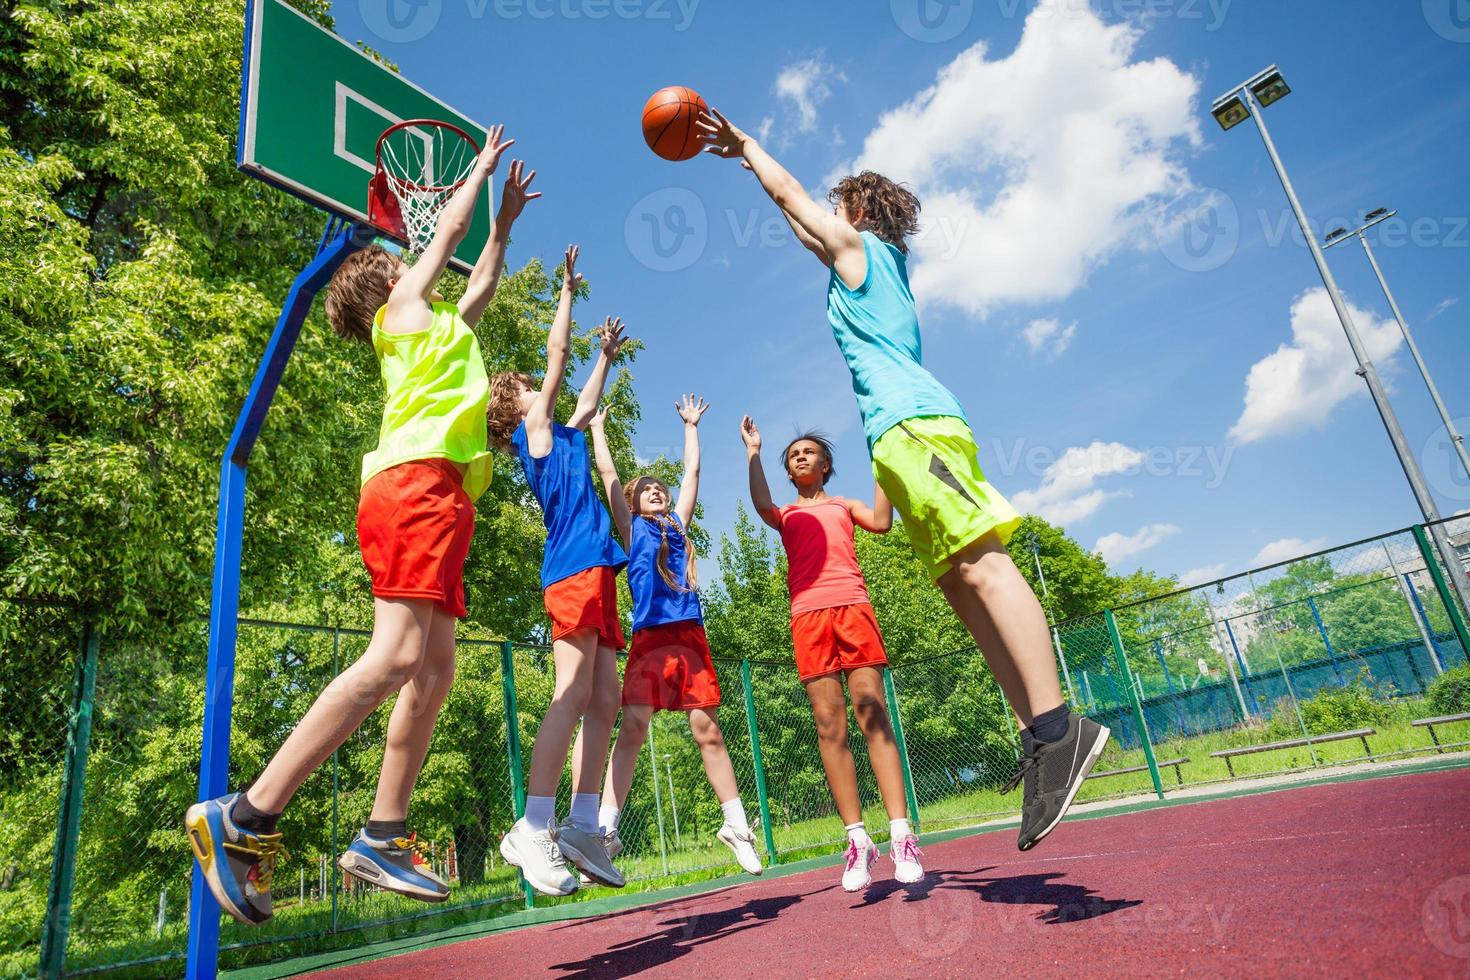 Children jump for ball during basketball game photo